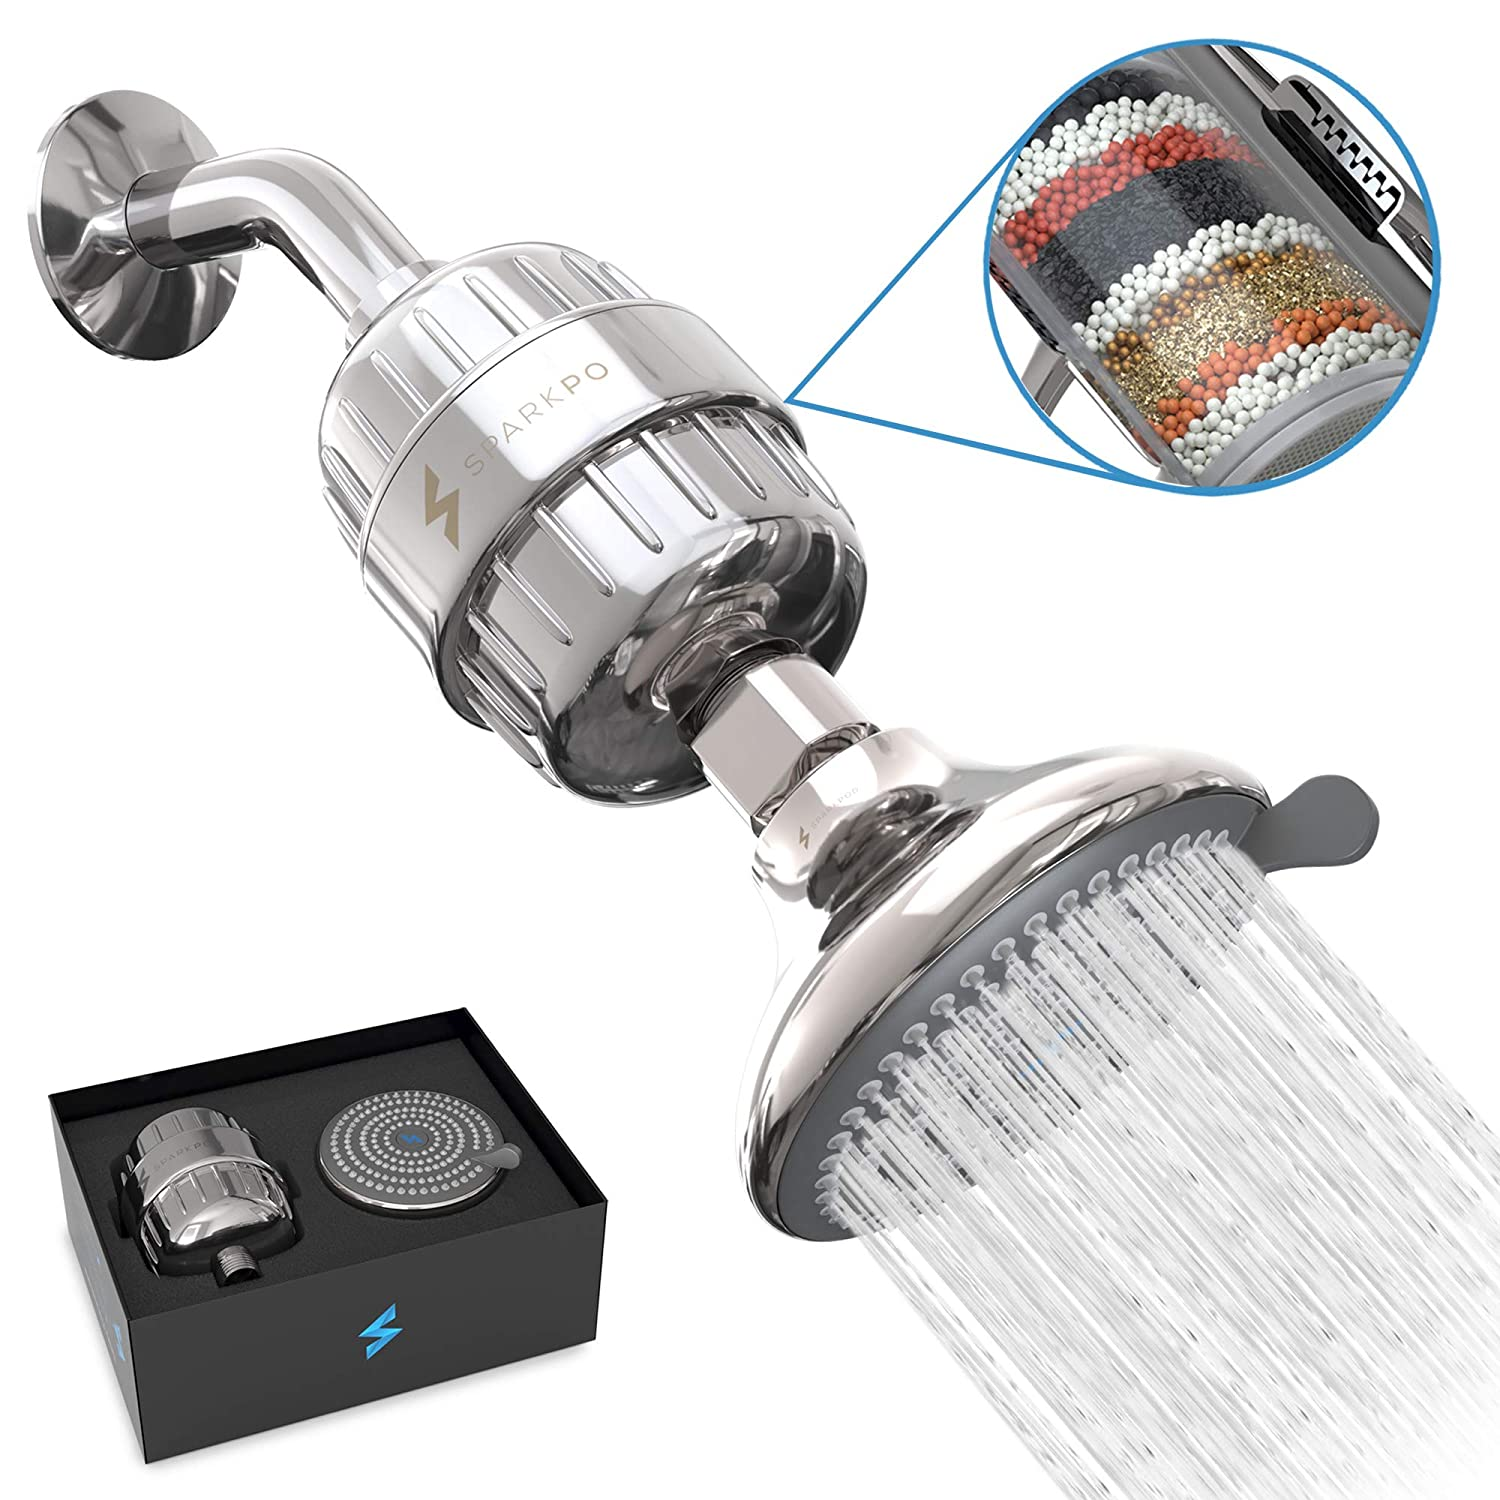 2. SparkPod Shower Filter Head